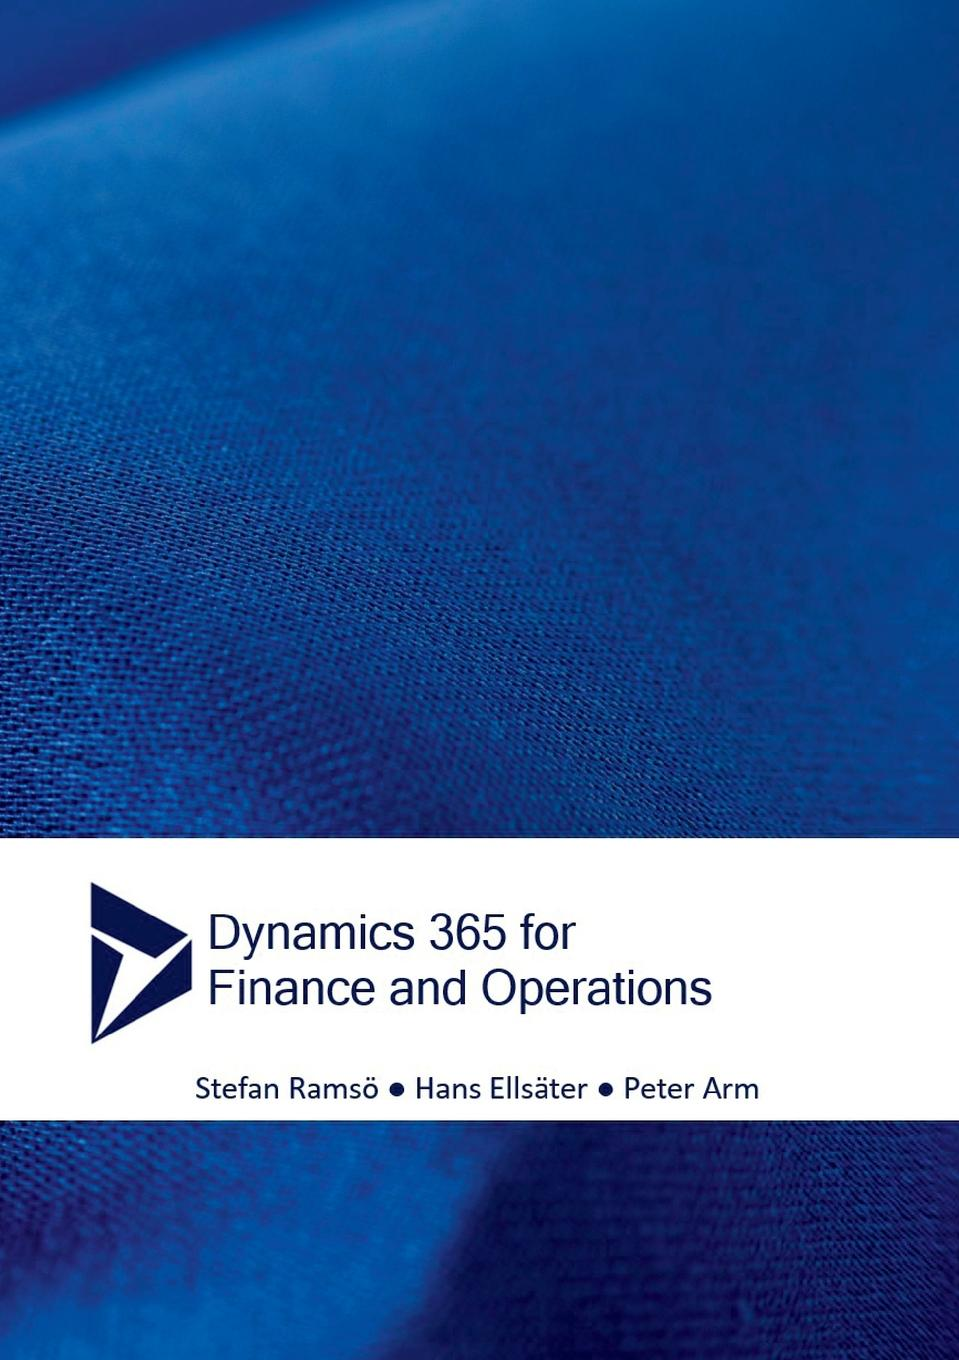 Stefan Ramsö, Hans Ellsäter, Peter Arm Dynamics 365 for Finance and Operations cho w s to stochastic structural dynamics application of finite element methods